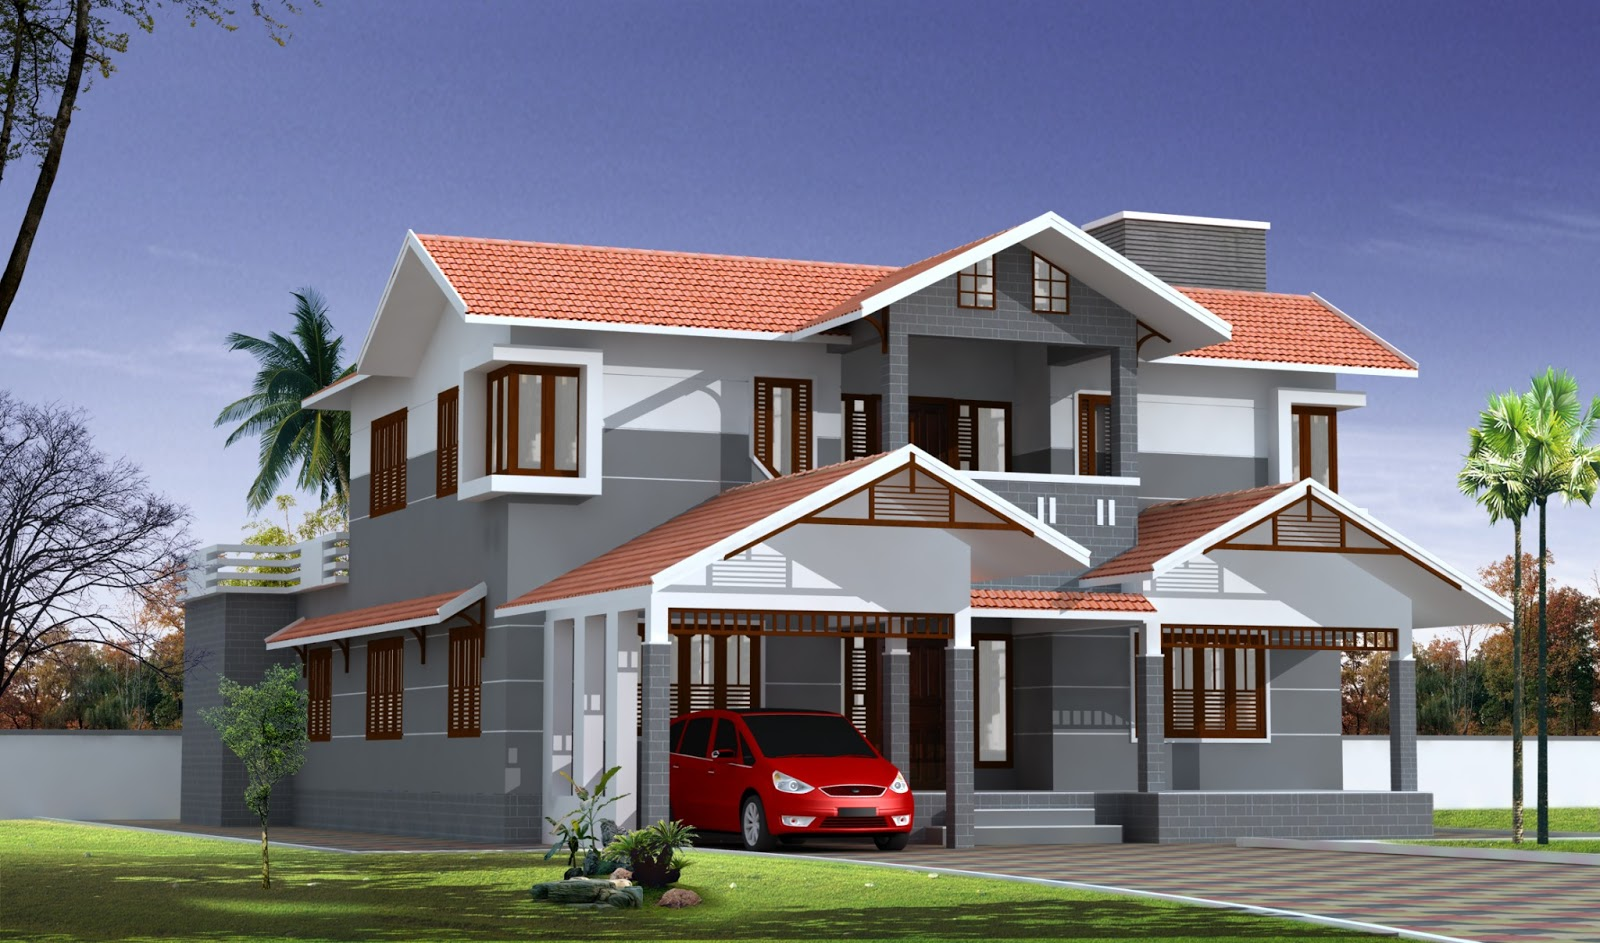 Latest Home Design - Home Design Ideas